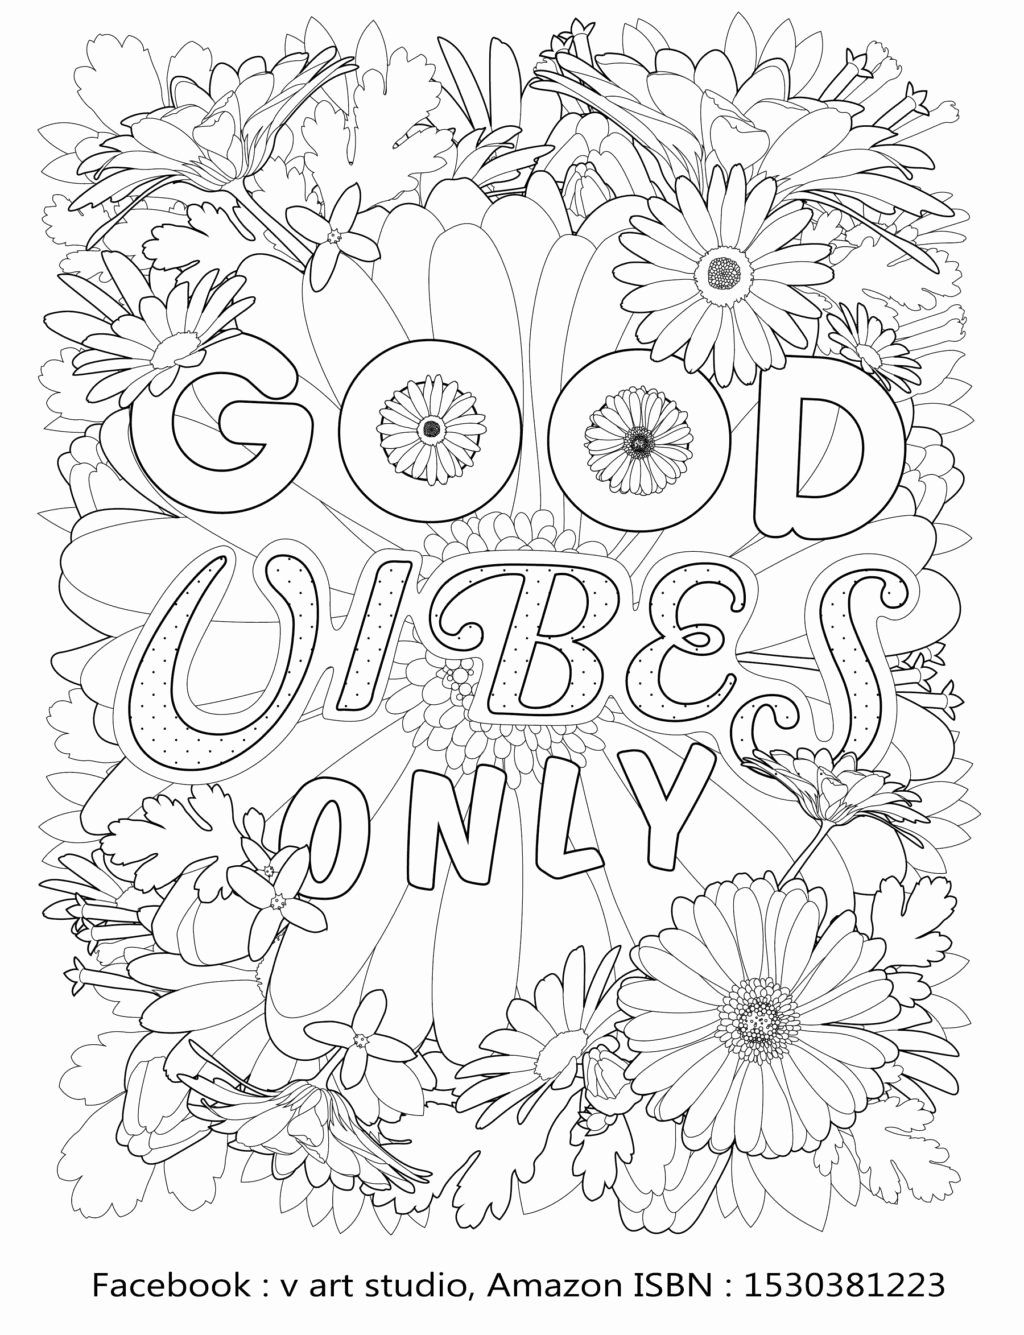 Good Vibes Coloring Book Beautiful Coloring Good Vibes Coloring Book Pin By K Imagine Coloring Books Love Coloring Pages Coloring Pages Inspirational